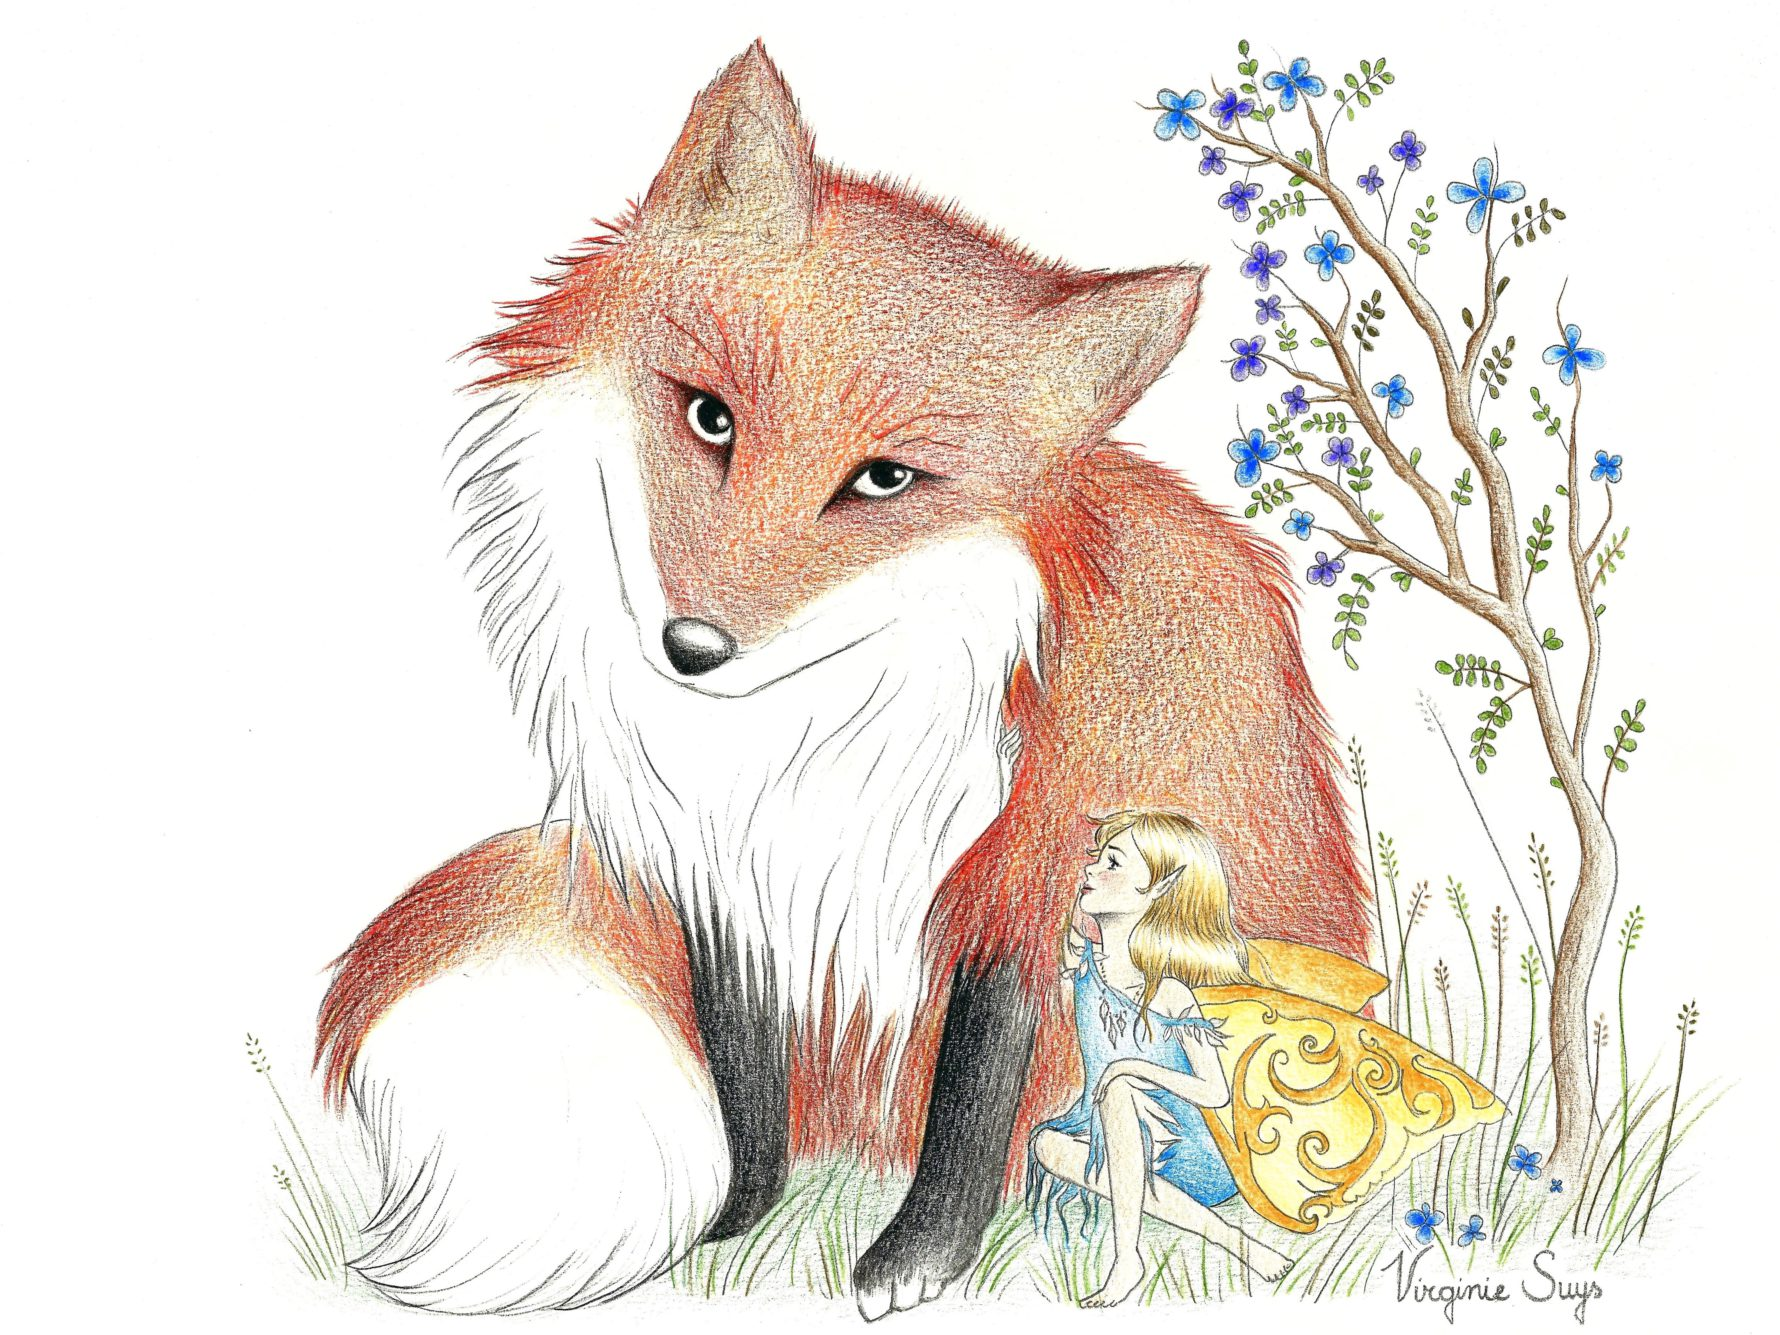 Virginie Suys Fox and fairy in red and blue illustration